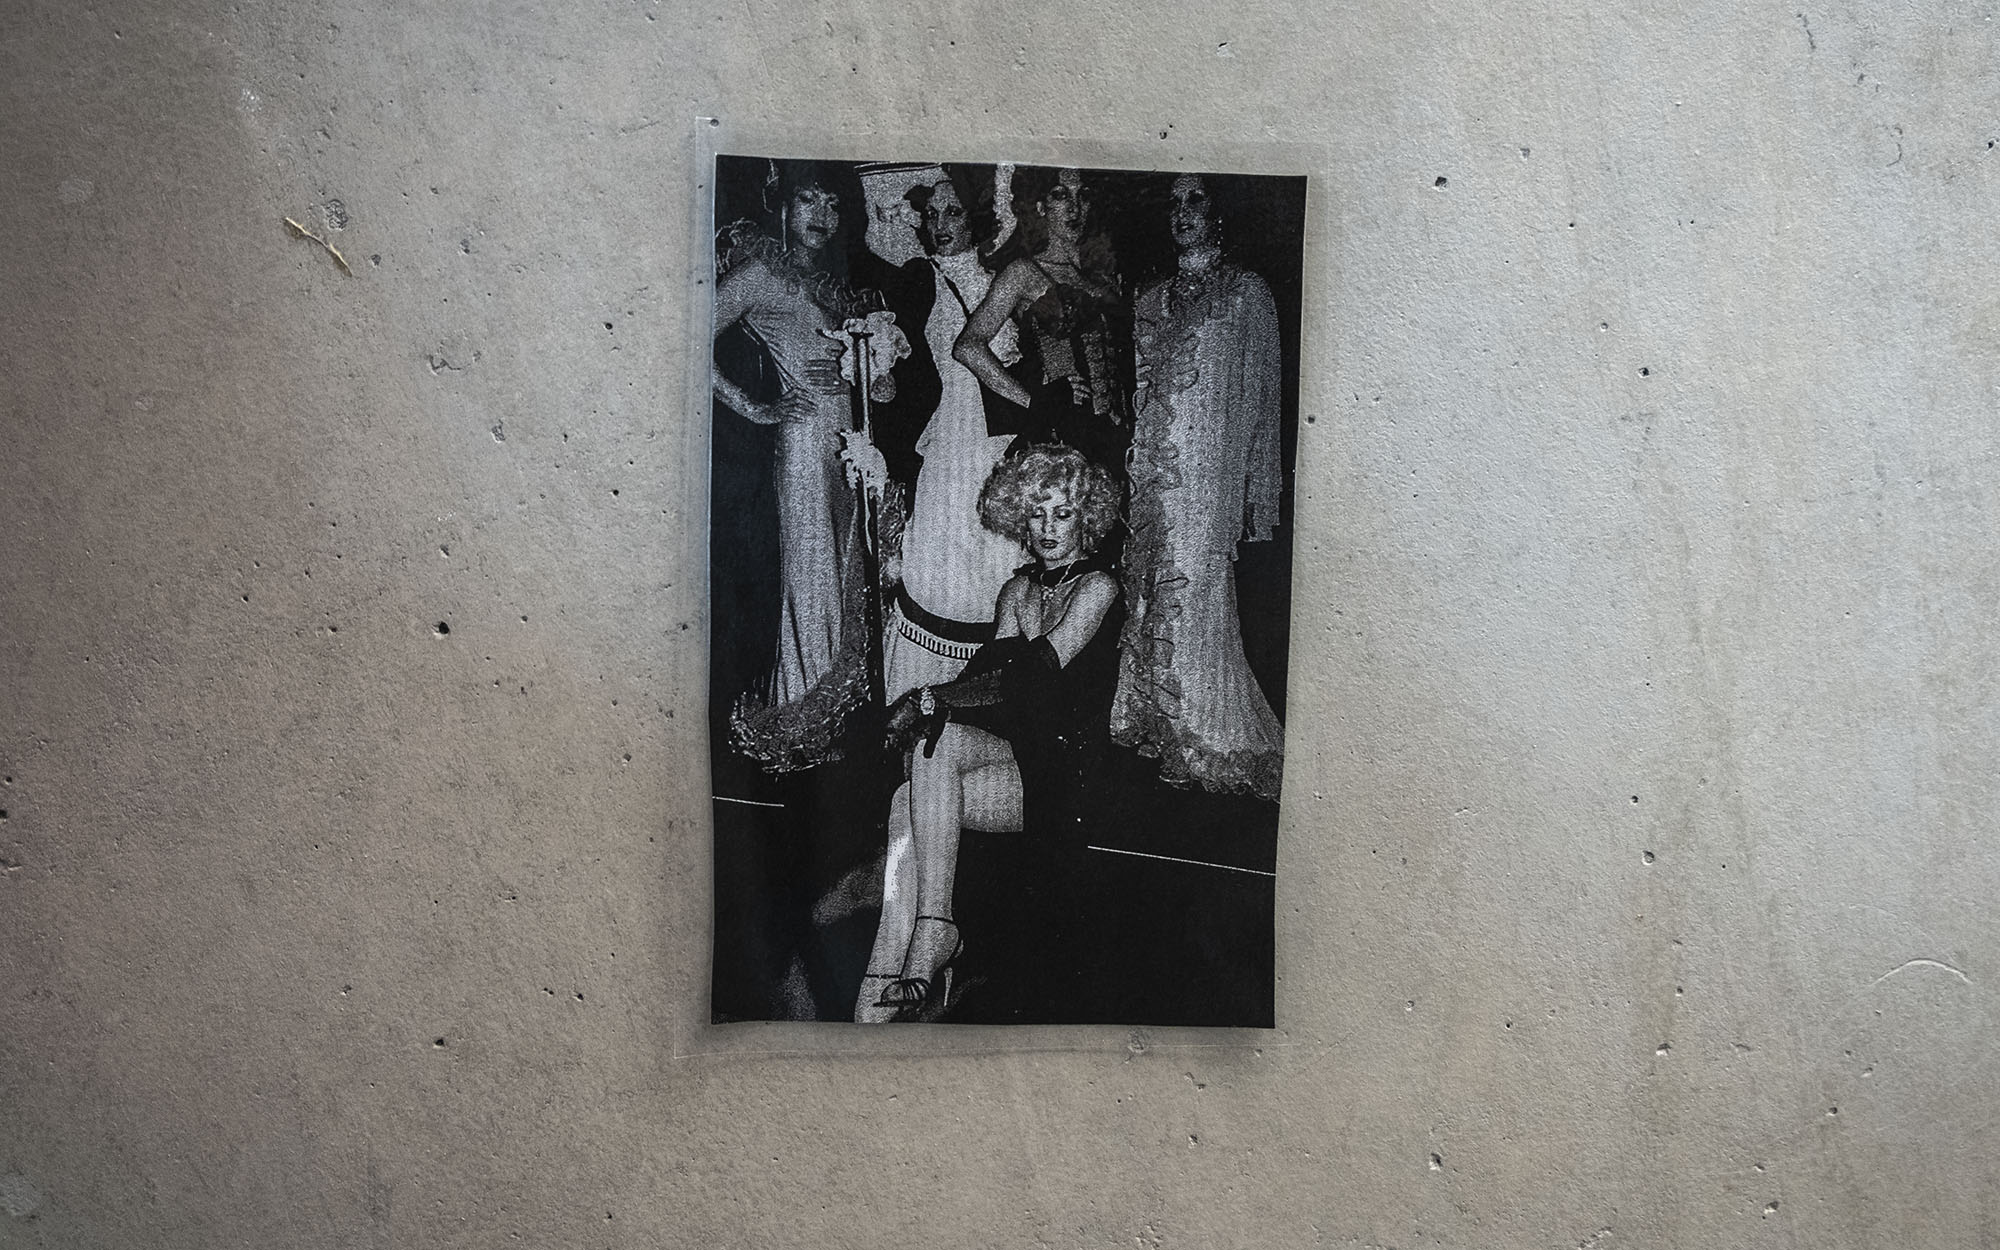 Photo hanging on a concrete wall featuring five people in evening dress